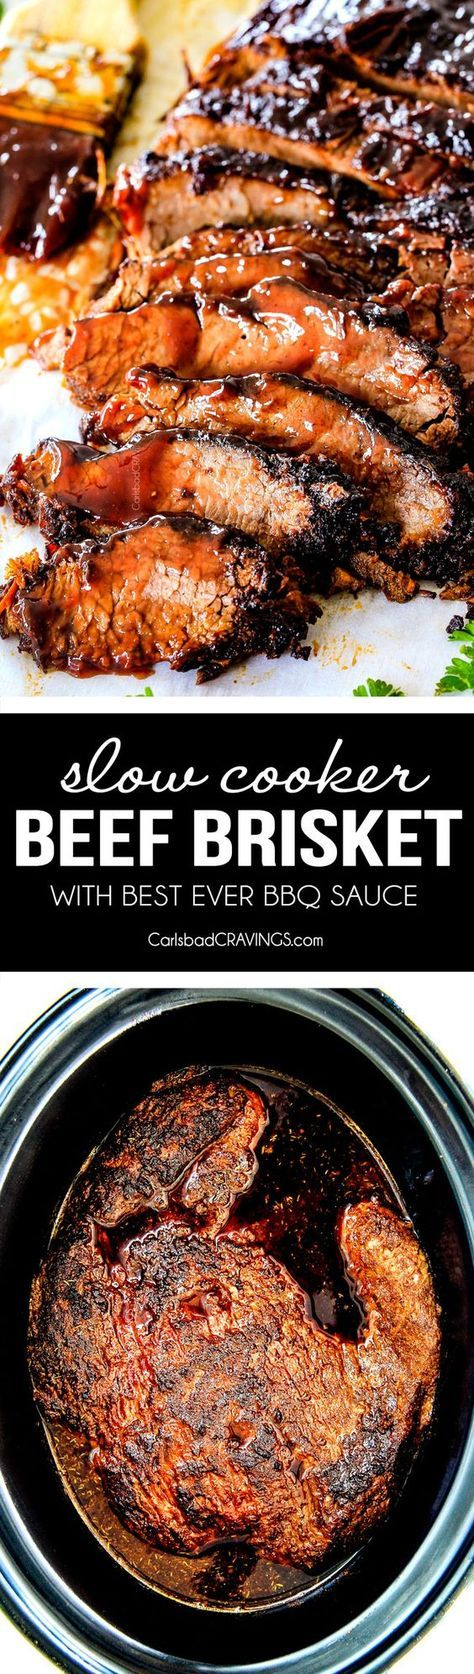 """Wonderfully juicy, flavor exploding, melt-in-your-mouth Slow Cooker Beef Brisket is my favorite meat dish EVER and """"better than any restaurant"""" according to my food critic husband! It's the ultimate easy company dinner because it can be made days in advance then reheated in the slow cooker for stress free entertaining!"""